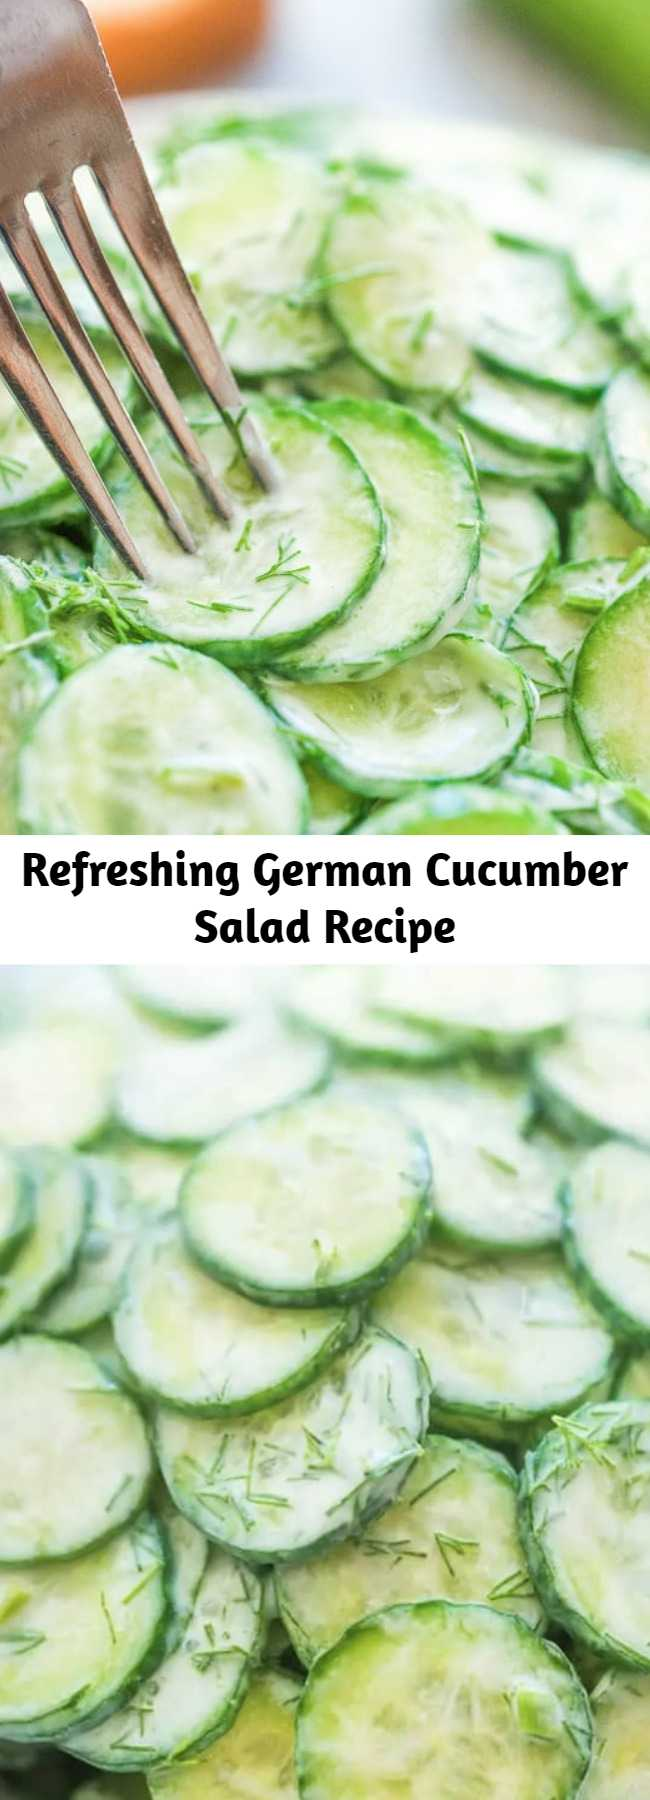 Refreshing German Cucumber Salad Recipe - This Creamy German Cucumber Salad is simple, crunchy, and very tasty. It makes a perfect side to any dish and you'll want to eat it all summer long. #cucumber #salad #creamy #sourcream #german #keto #lowcarb #recipeoftheday